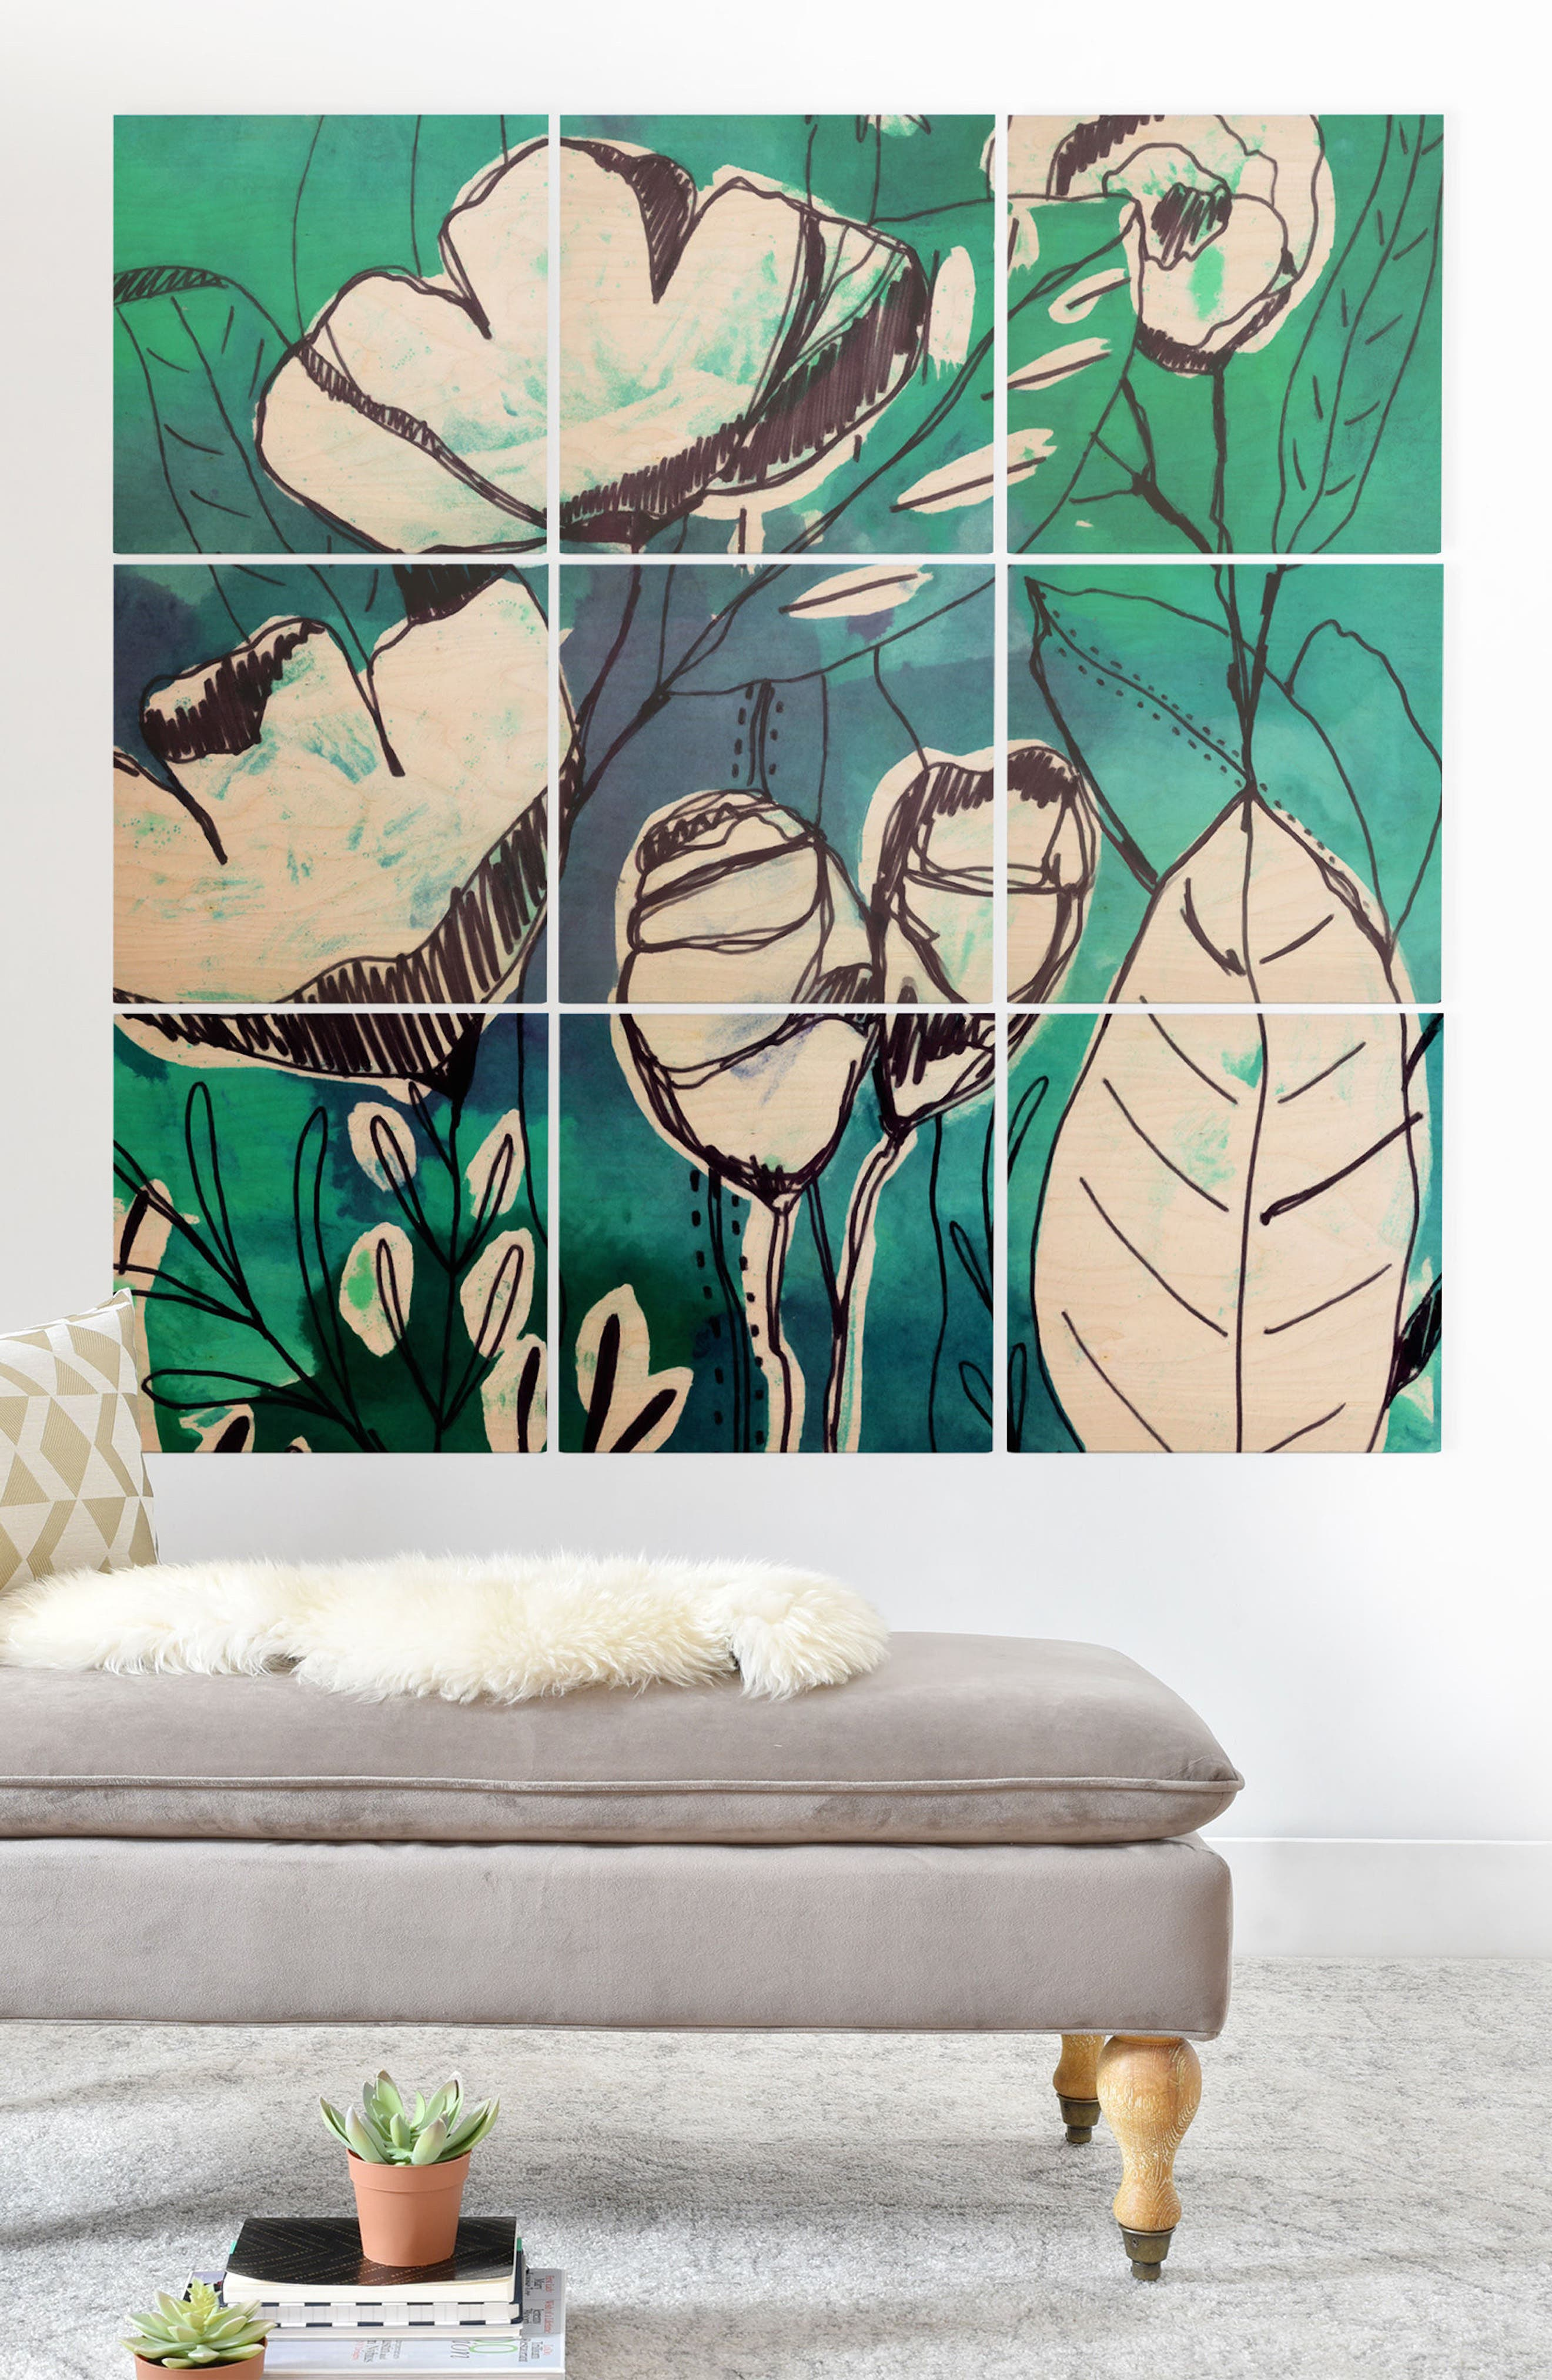 9-Piece Wood Wall Mural,                             Alternate thumbnail 2, color,